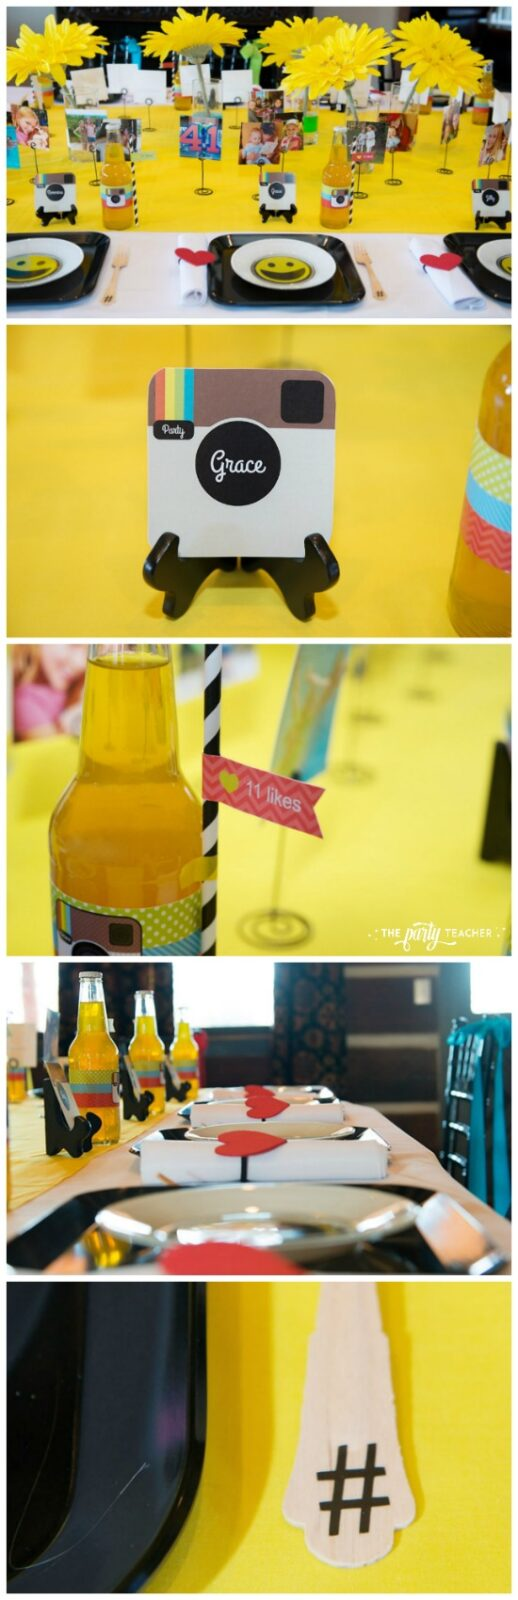 Selfie Scavenger Hunt Birthday Party by The Party Teacher - Instagram inspired dining table setting